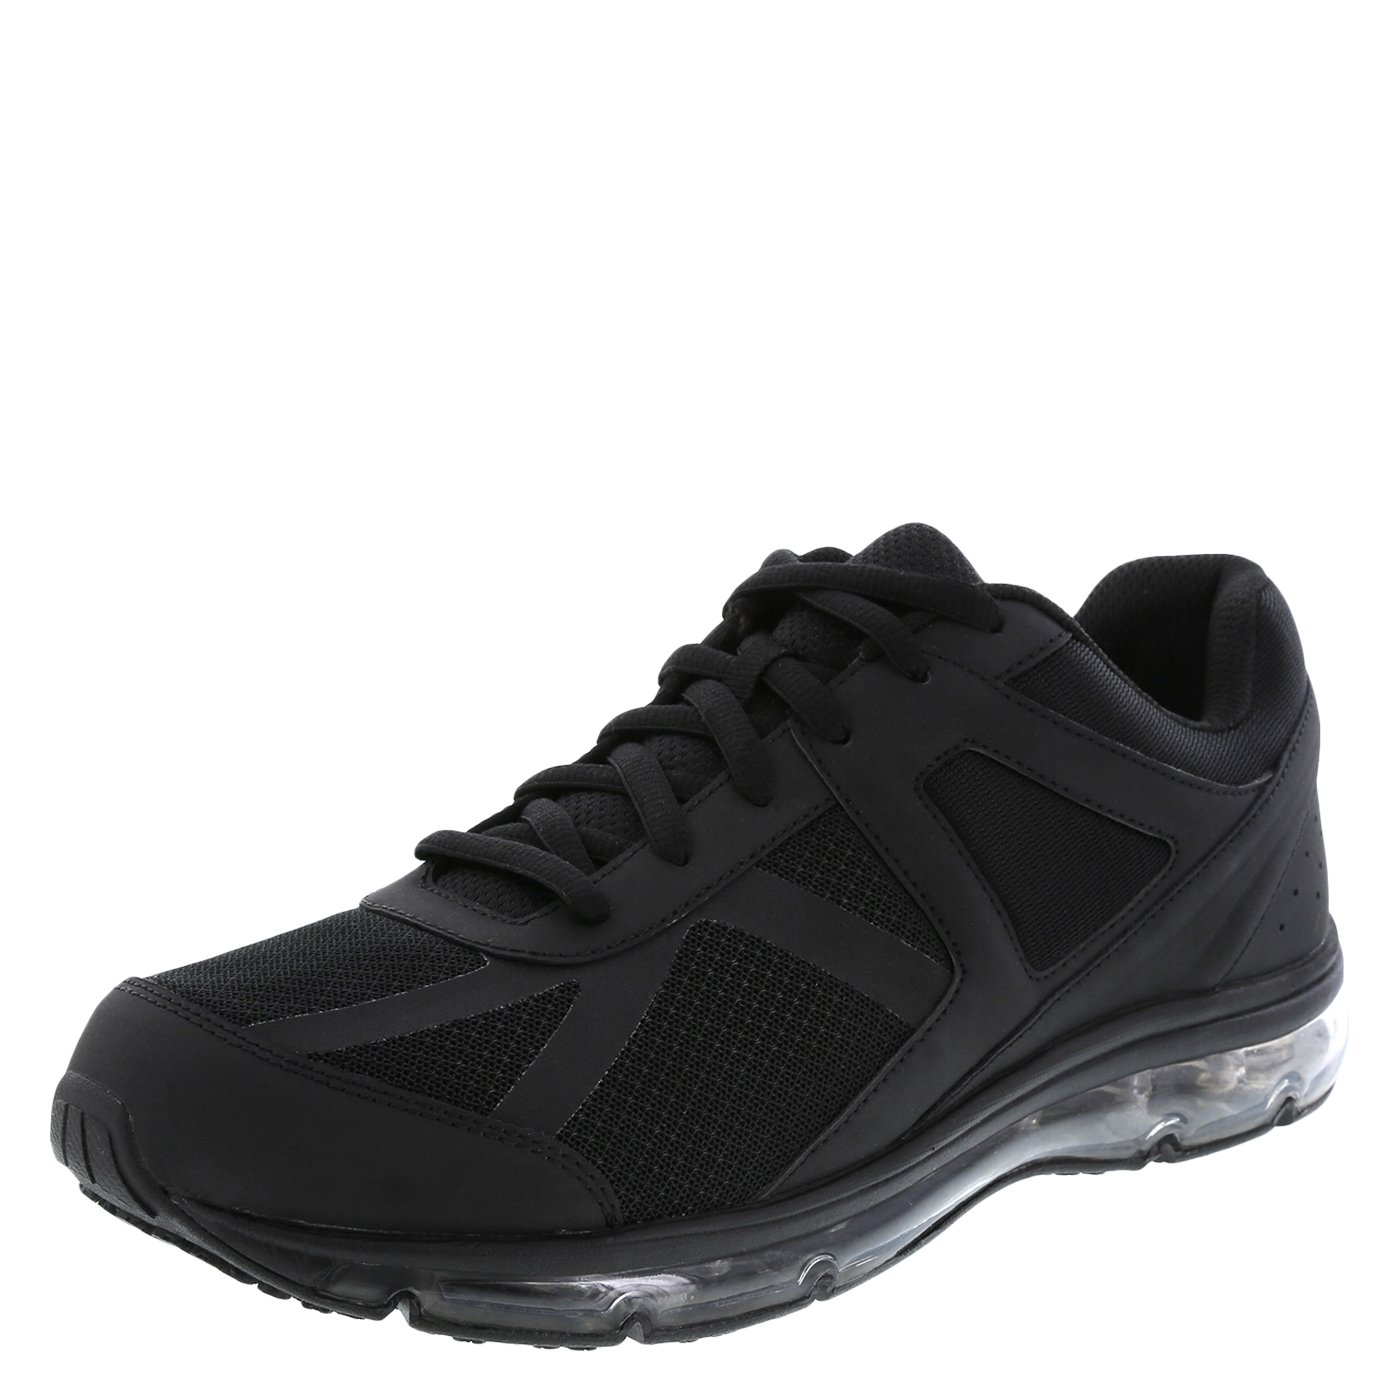 safeTstep Slip Resistant Men's Black Men's Blast Runner 10 Wide by safeTstep